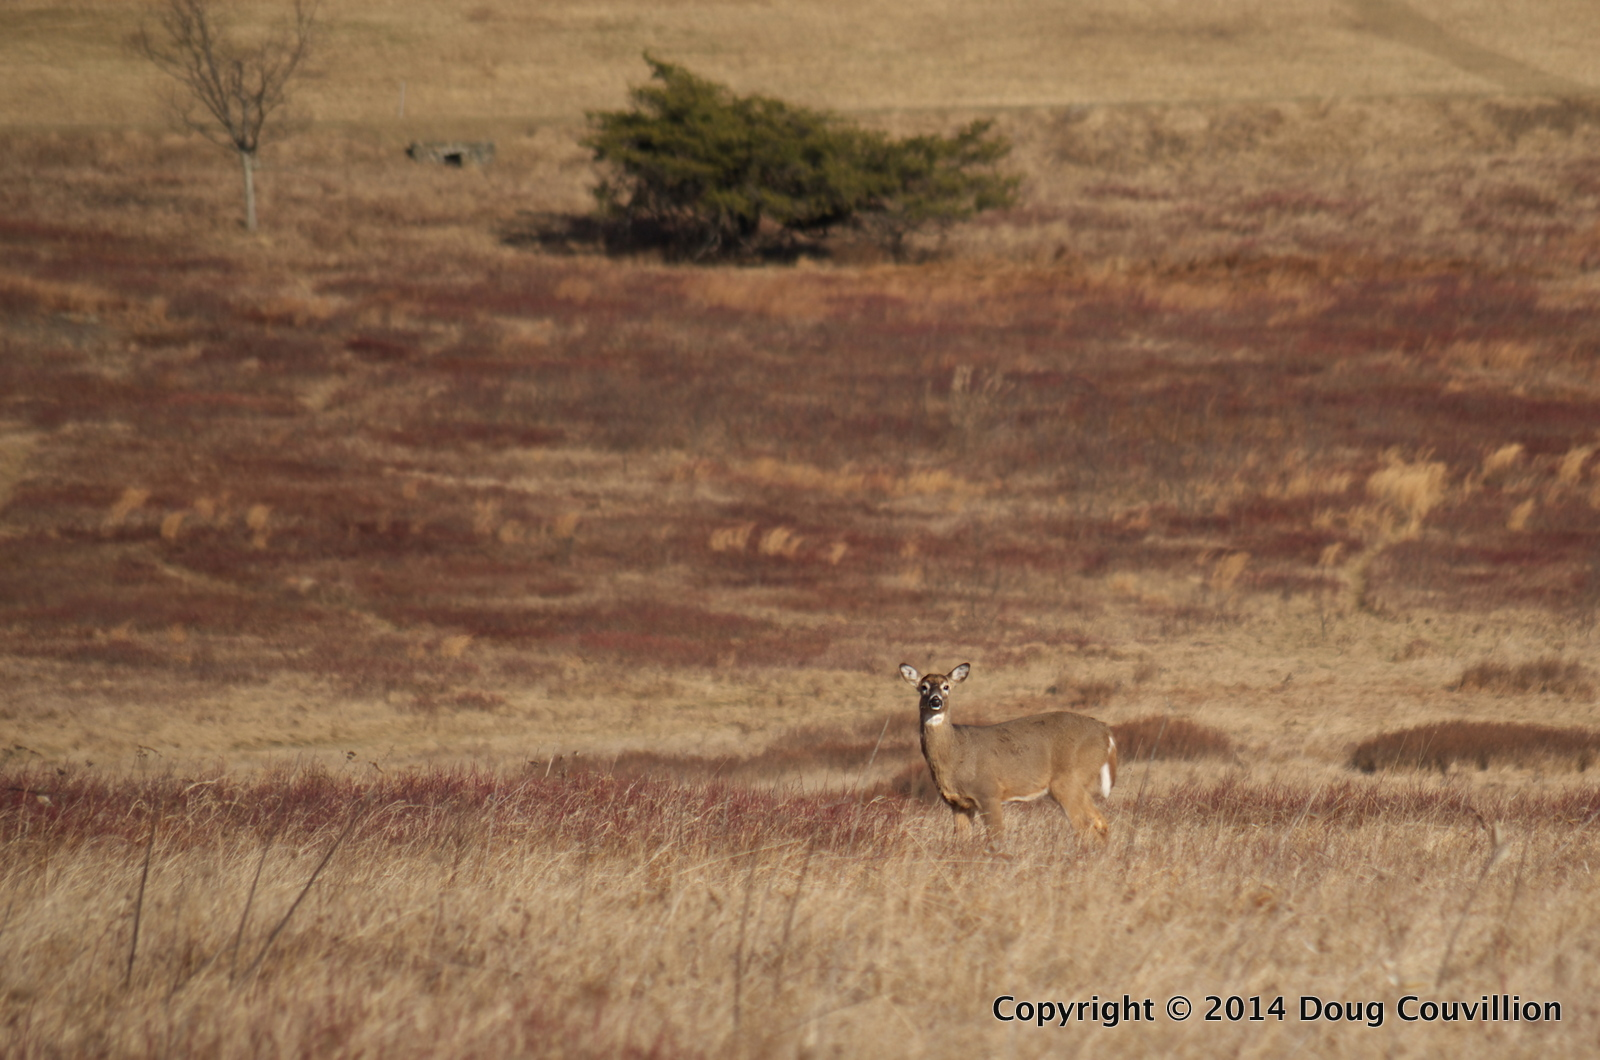 photograph of a whitetail deer standing in a meadow